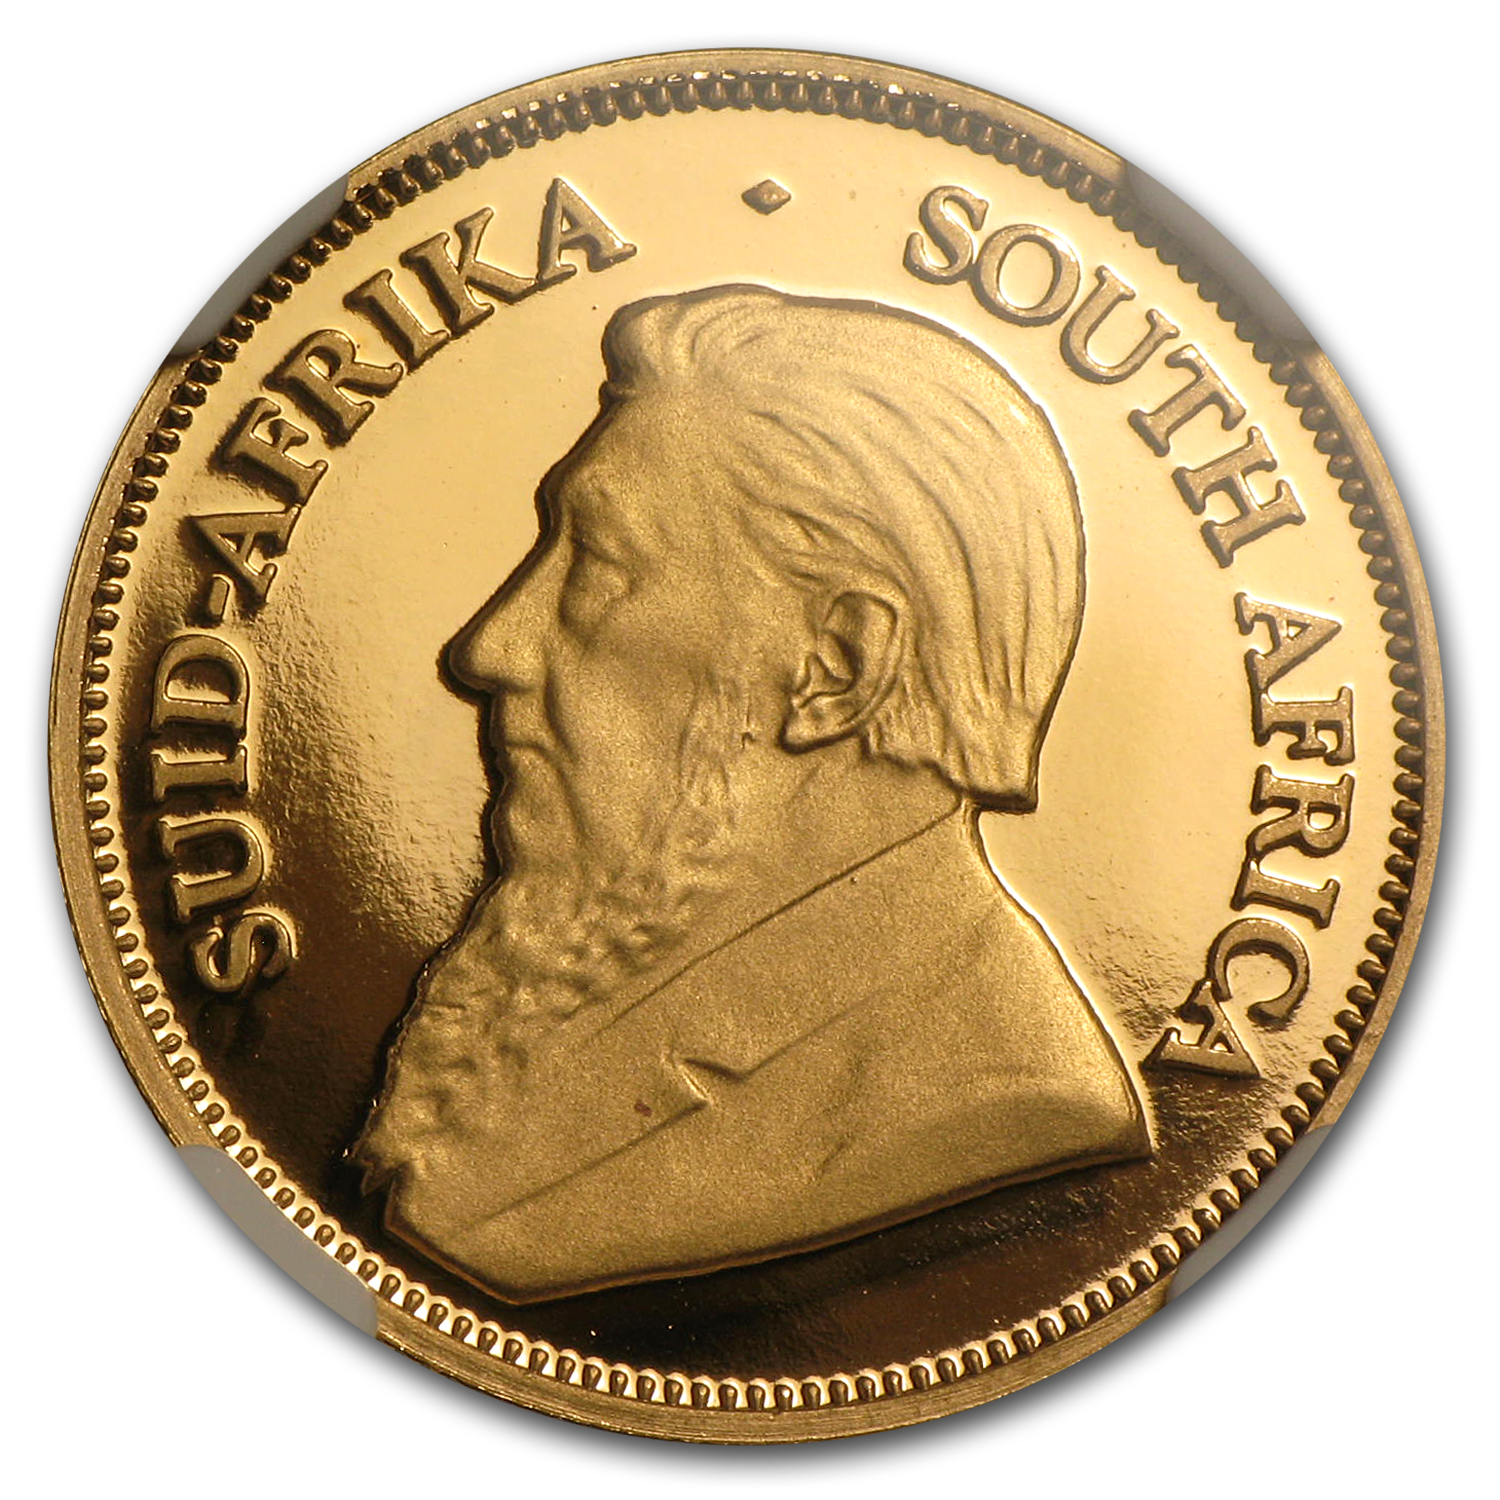 2002 South Africa 1/4 oz Gold Krugerrand PF-69 NGC